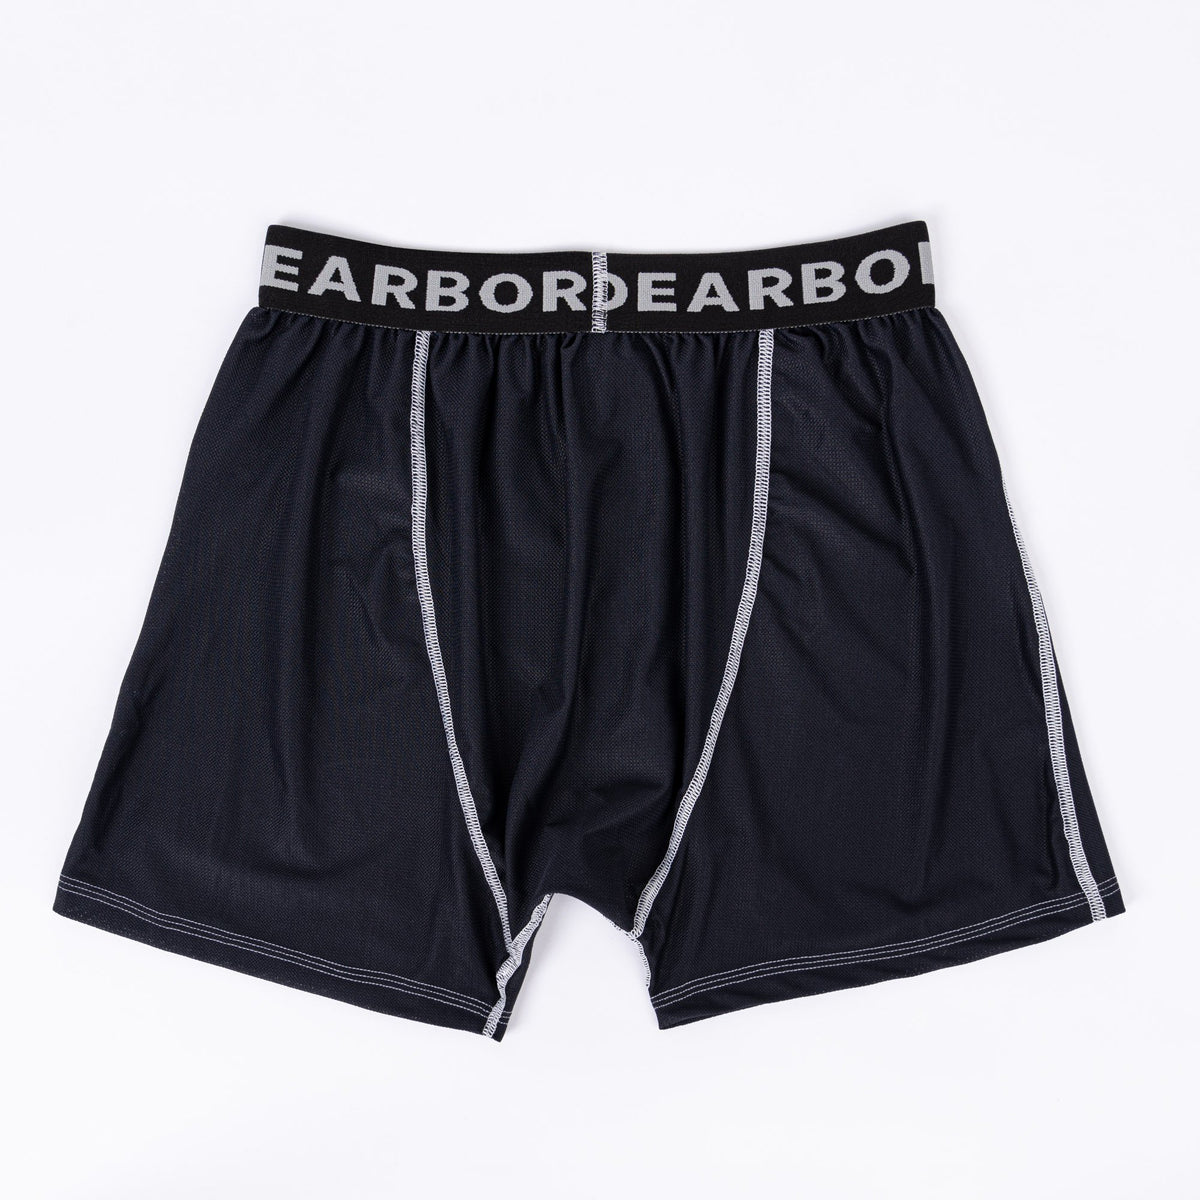 Color:Black Boxers